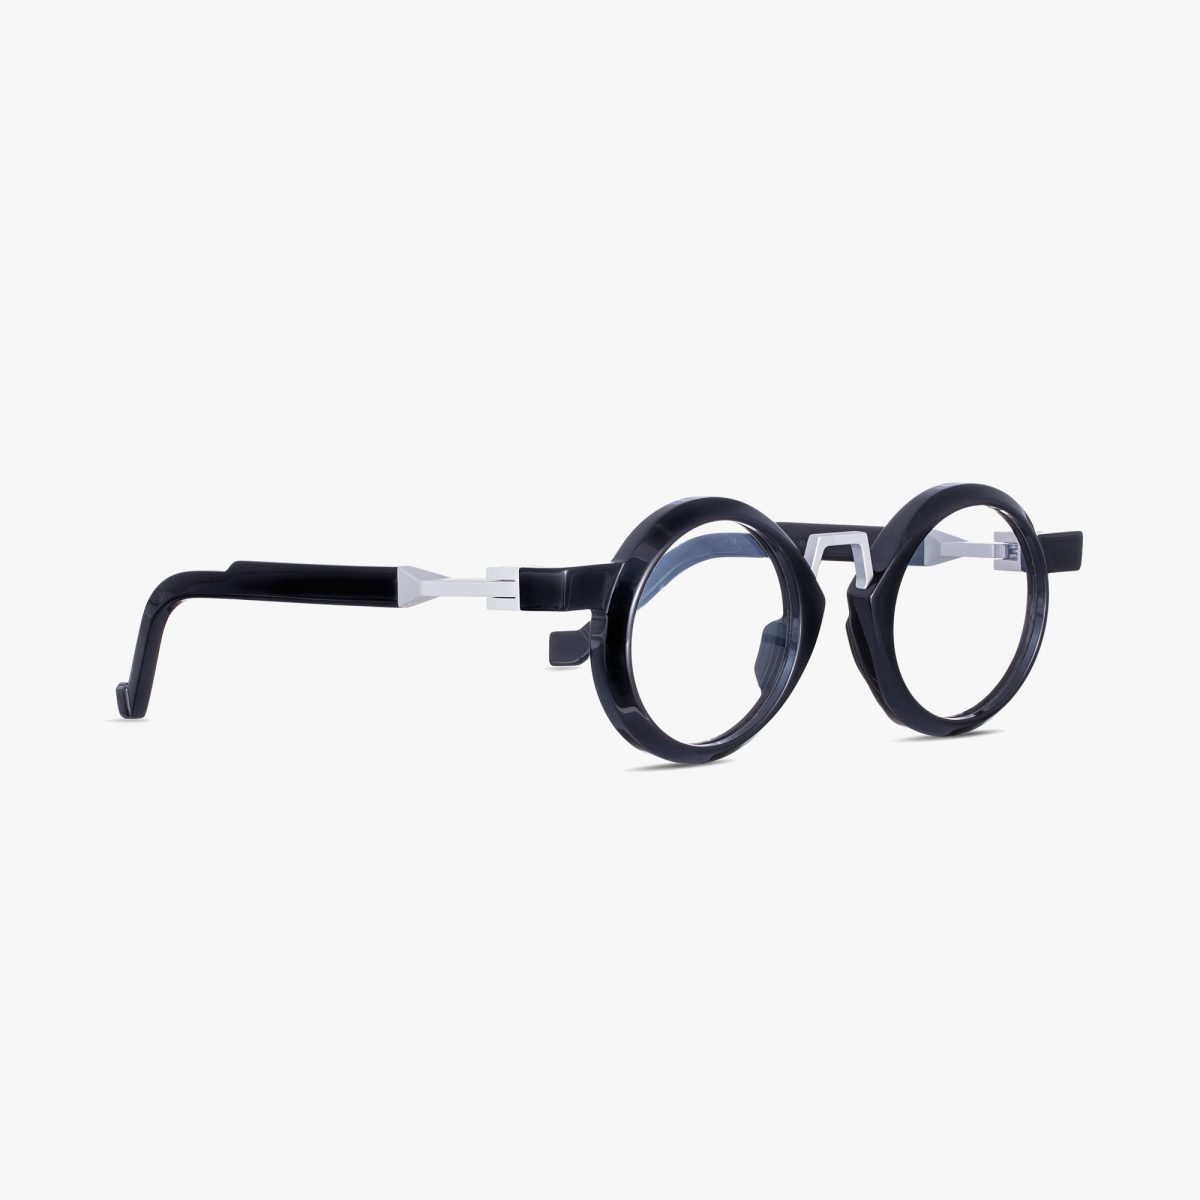 vava wl0043 black online shop optical frame